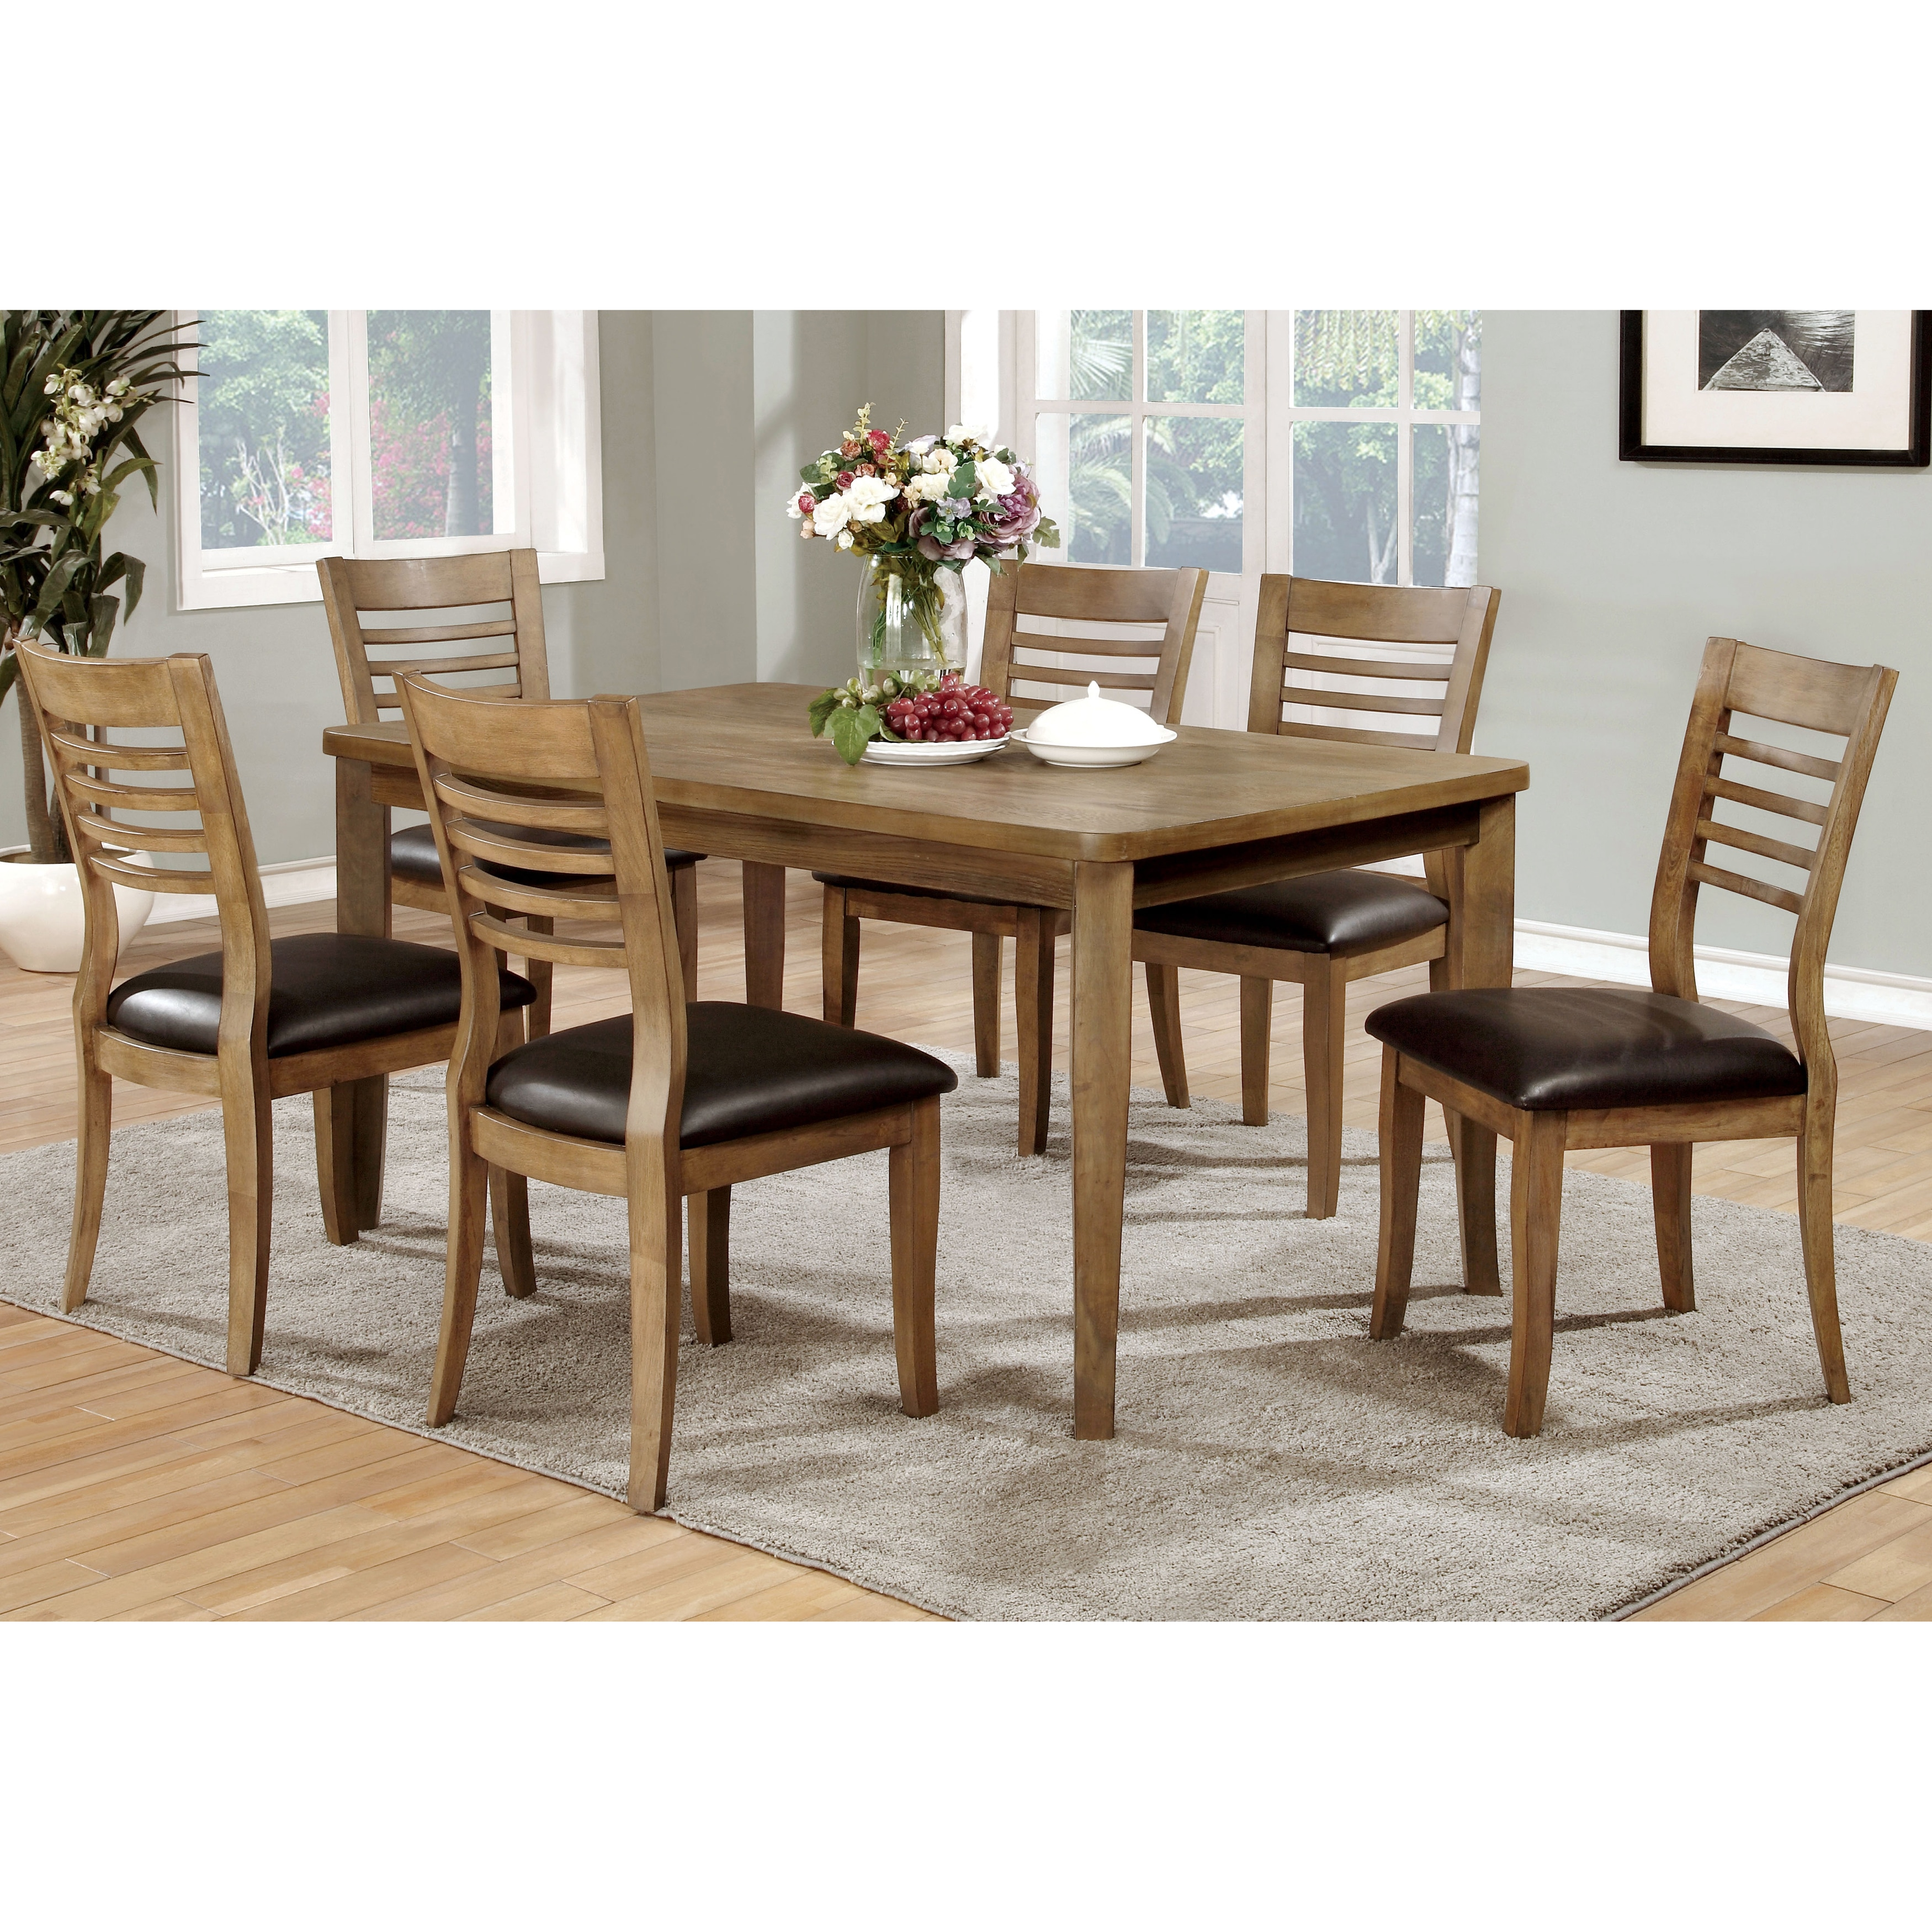 Genial Shop Furniture Of America Hallins Natural Oak Dining Table   Free Shipping  Today   Overstock   9932517